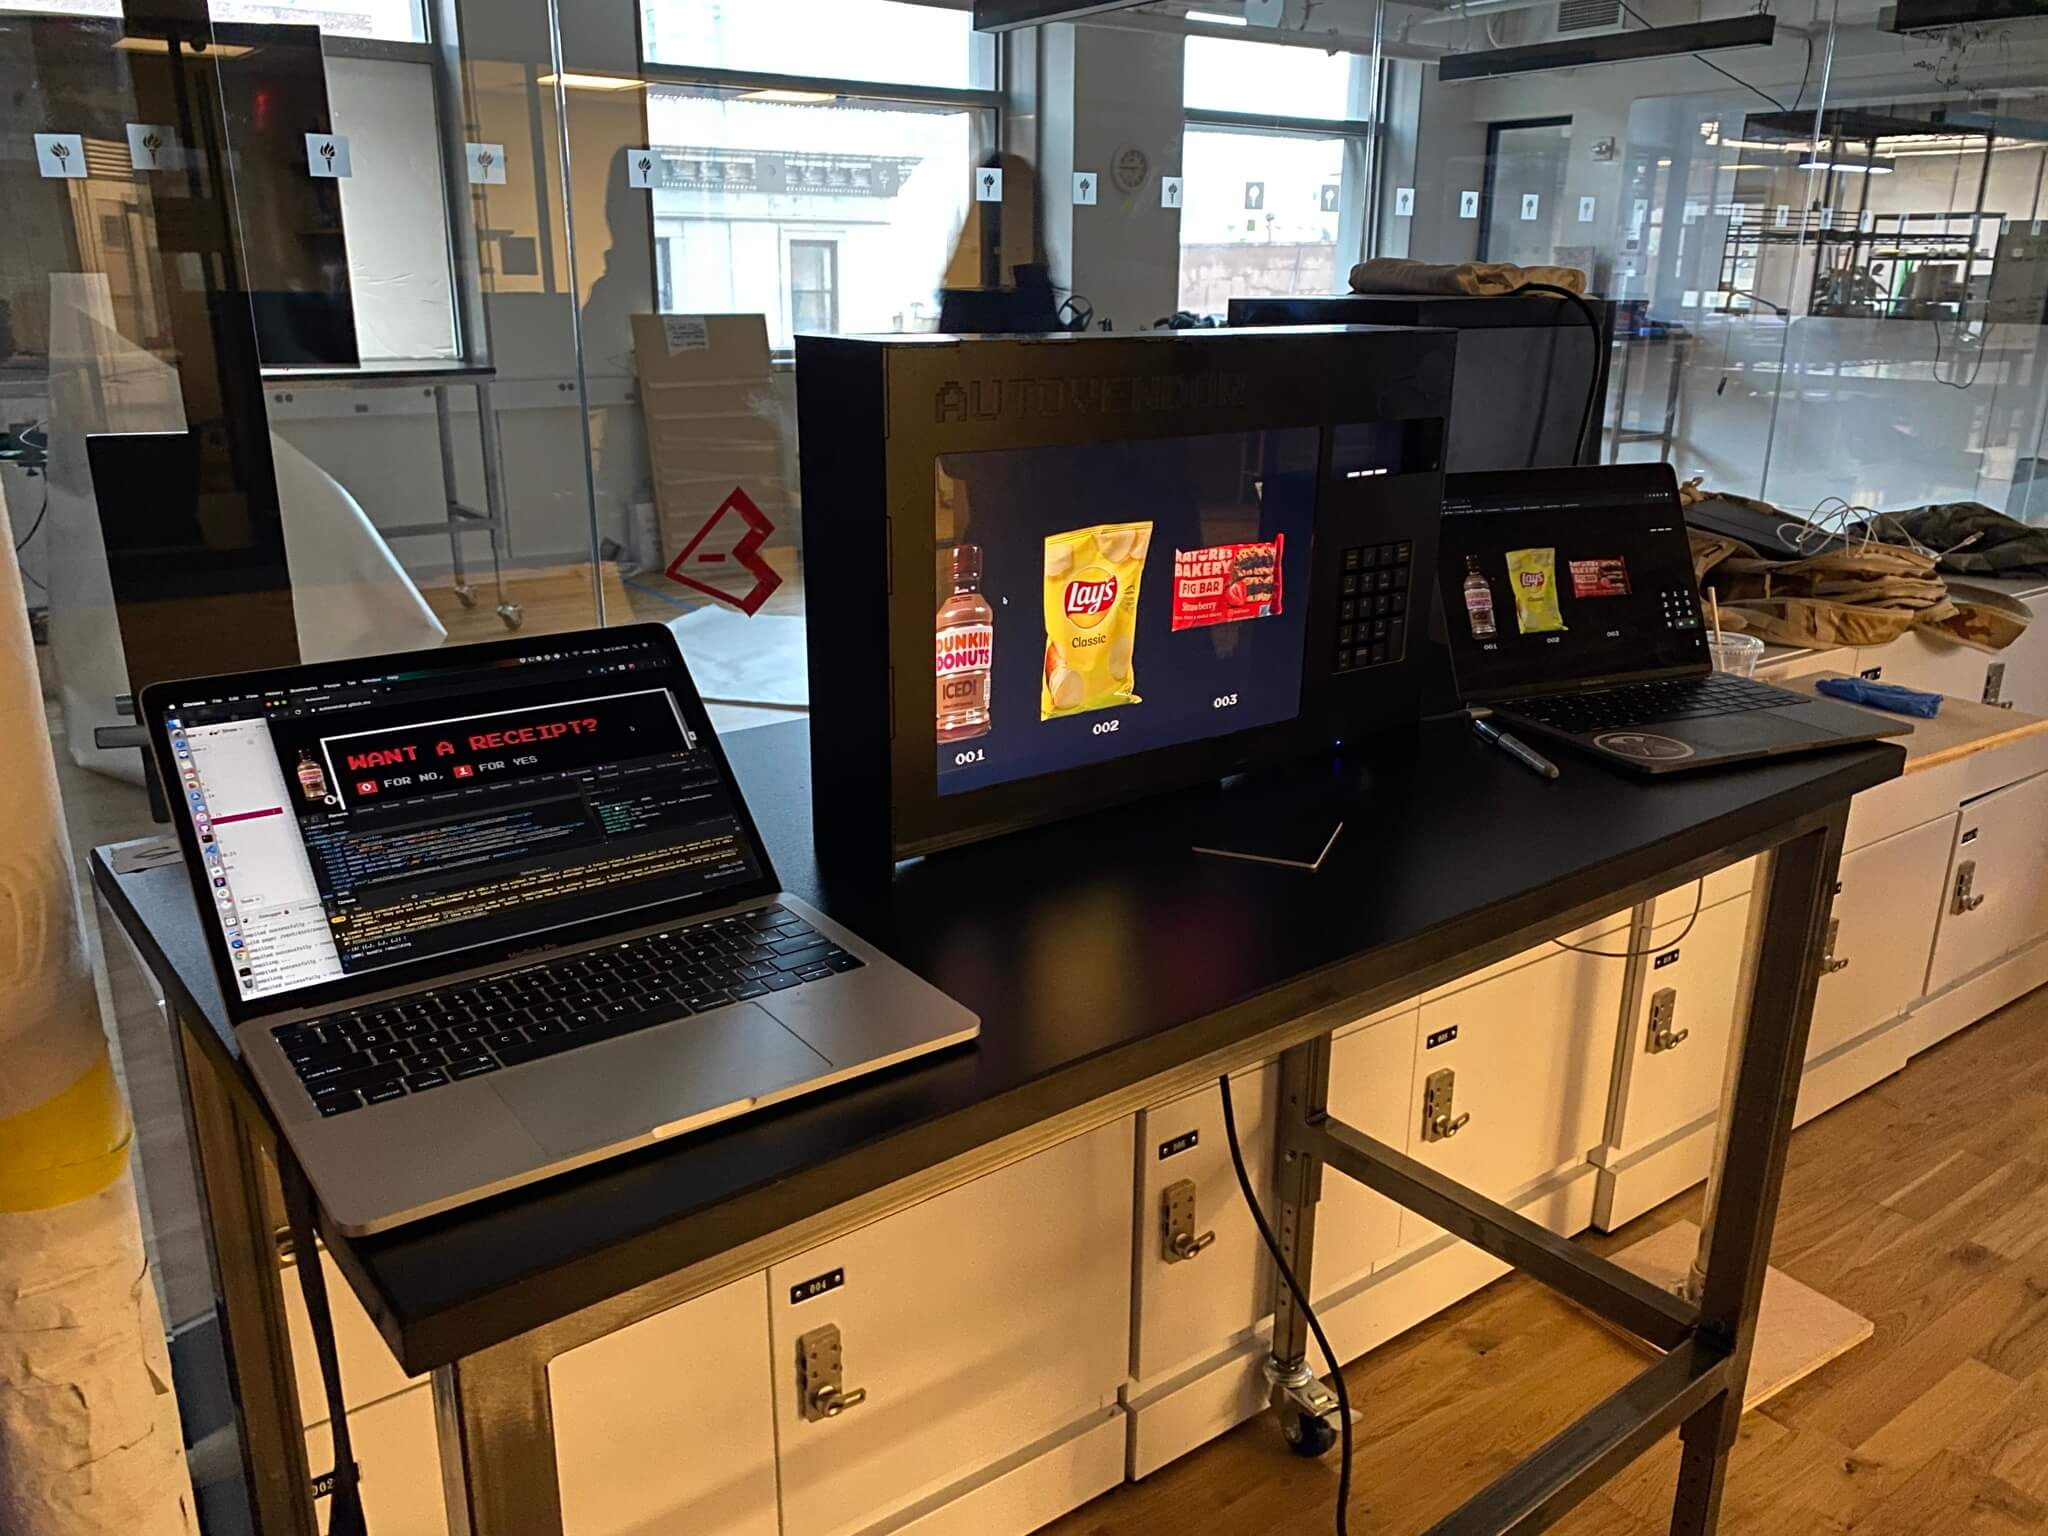 Setting up the installation, with two laptops surrounding the vending machine